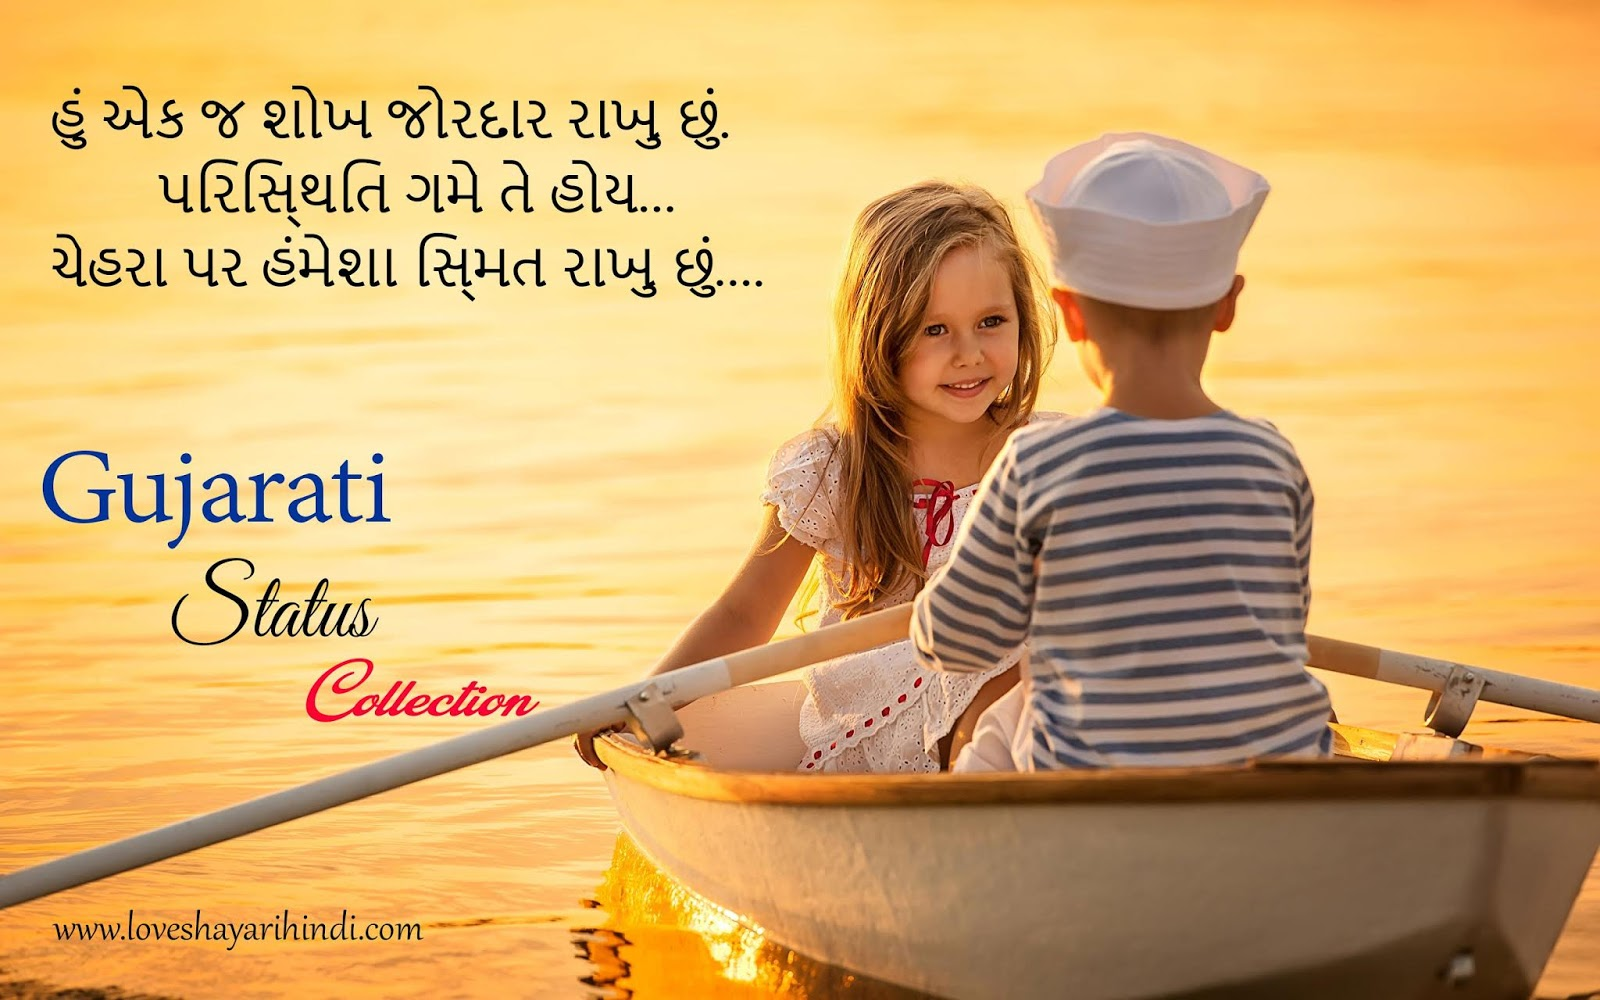 Gujarati Whatsapp Status, SMS, Quotes, Collection  | ગુજરાતી શાયરી